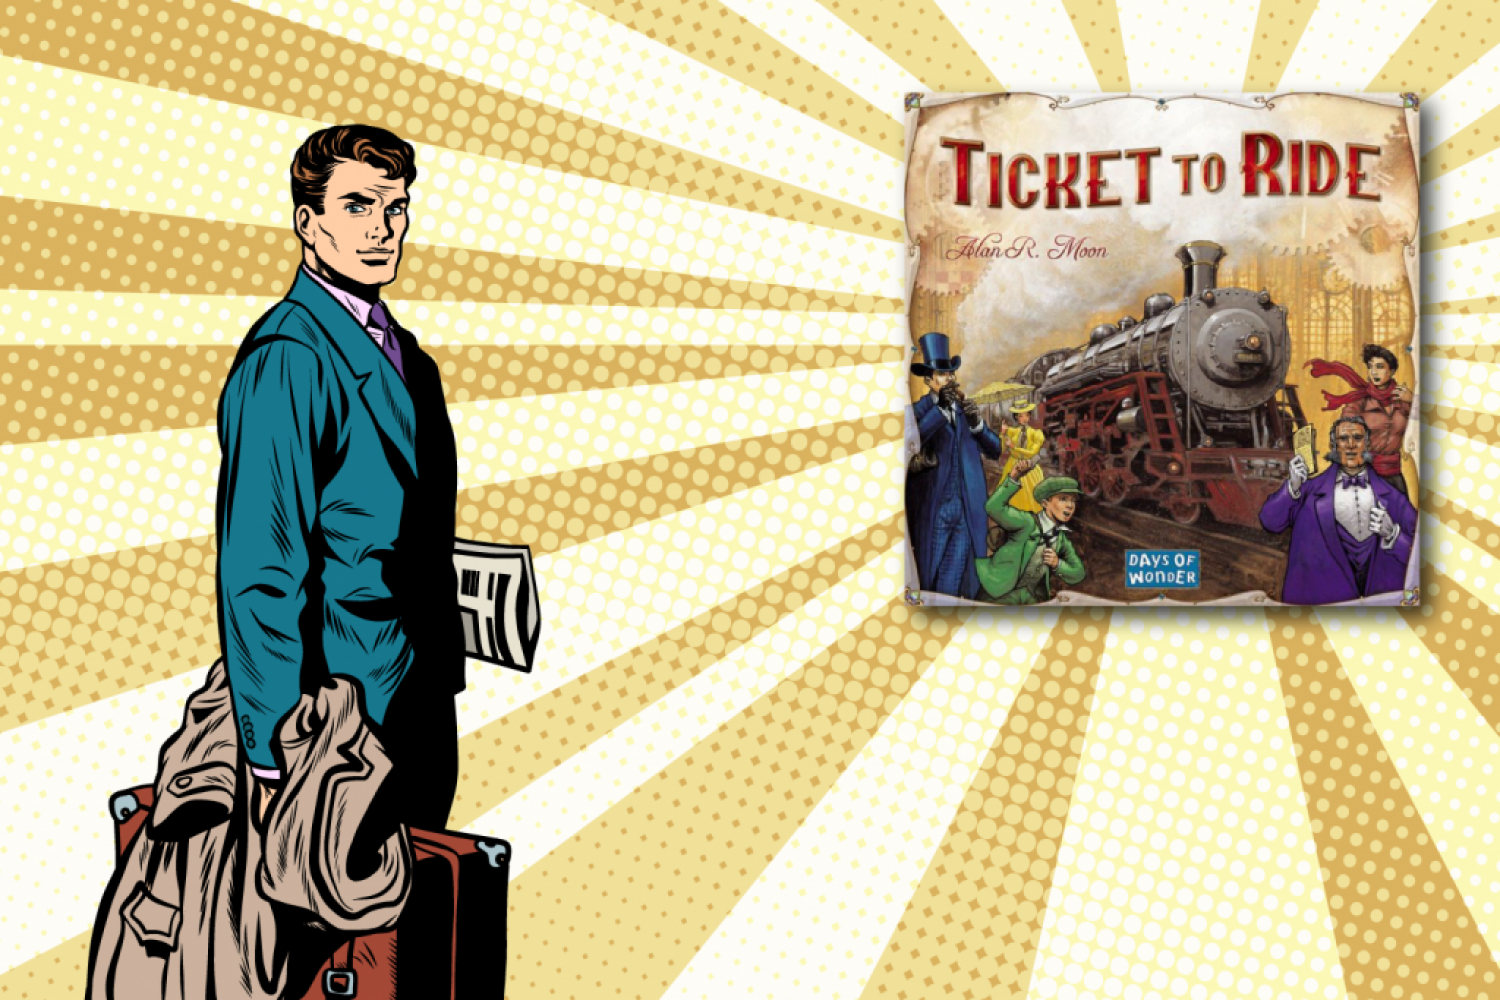 Ticket-to-ride-header-image-new